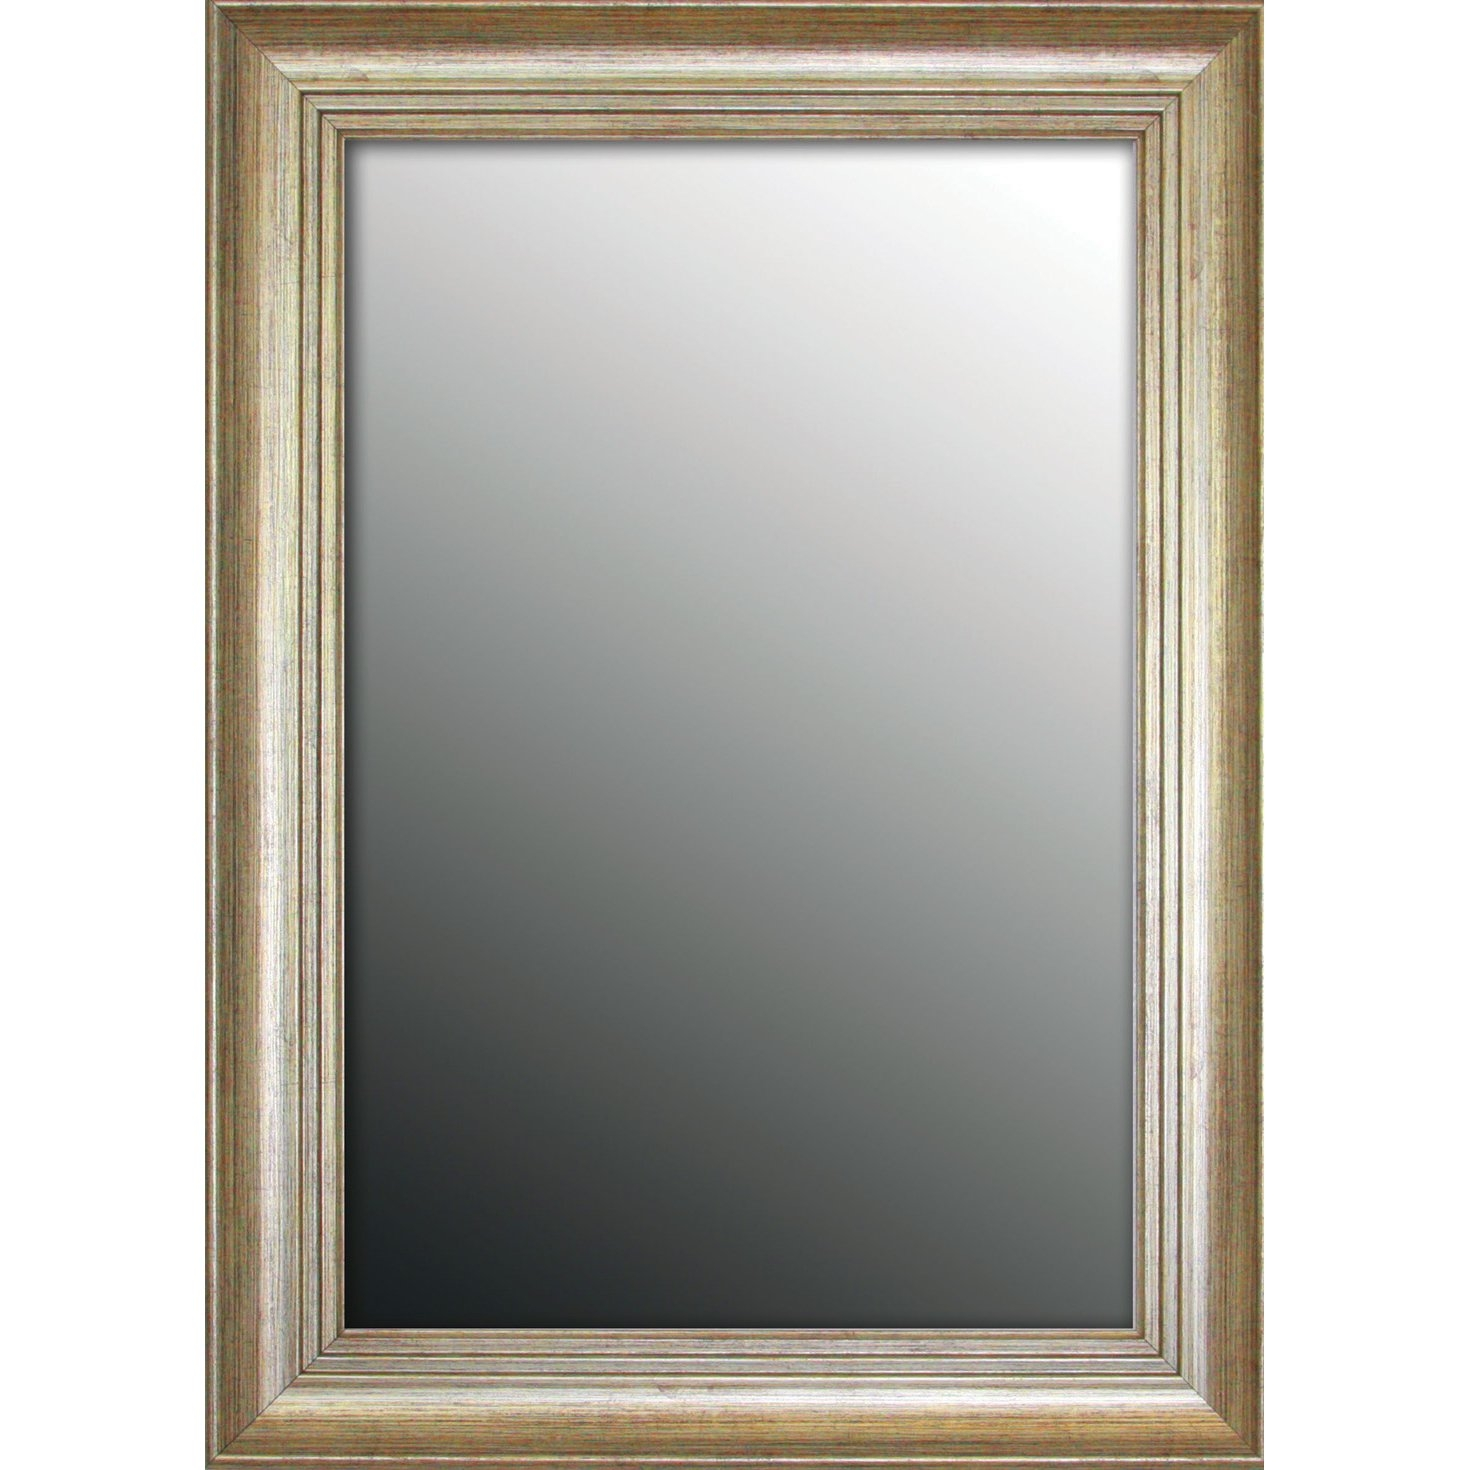 Second Look Mirrors Louis Xiv French Silver Wall Mirror Reviews Throughout Silver French Mirror (Image 12 of 15)